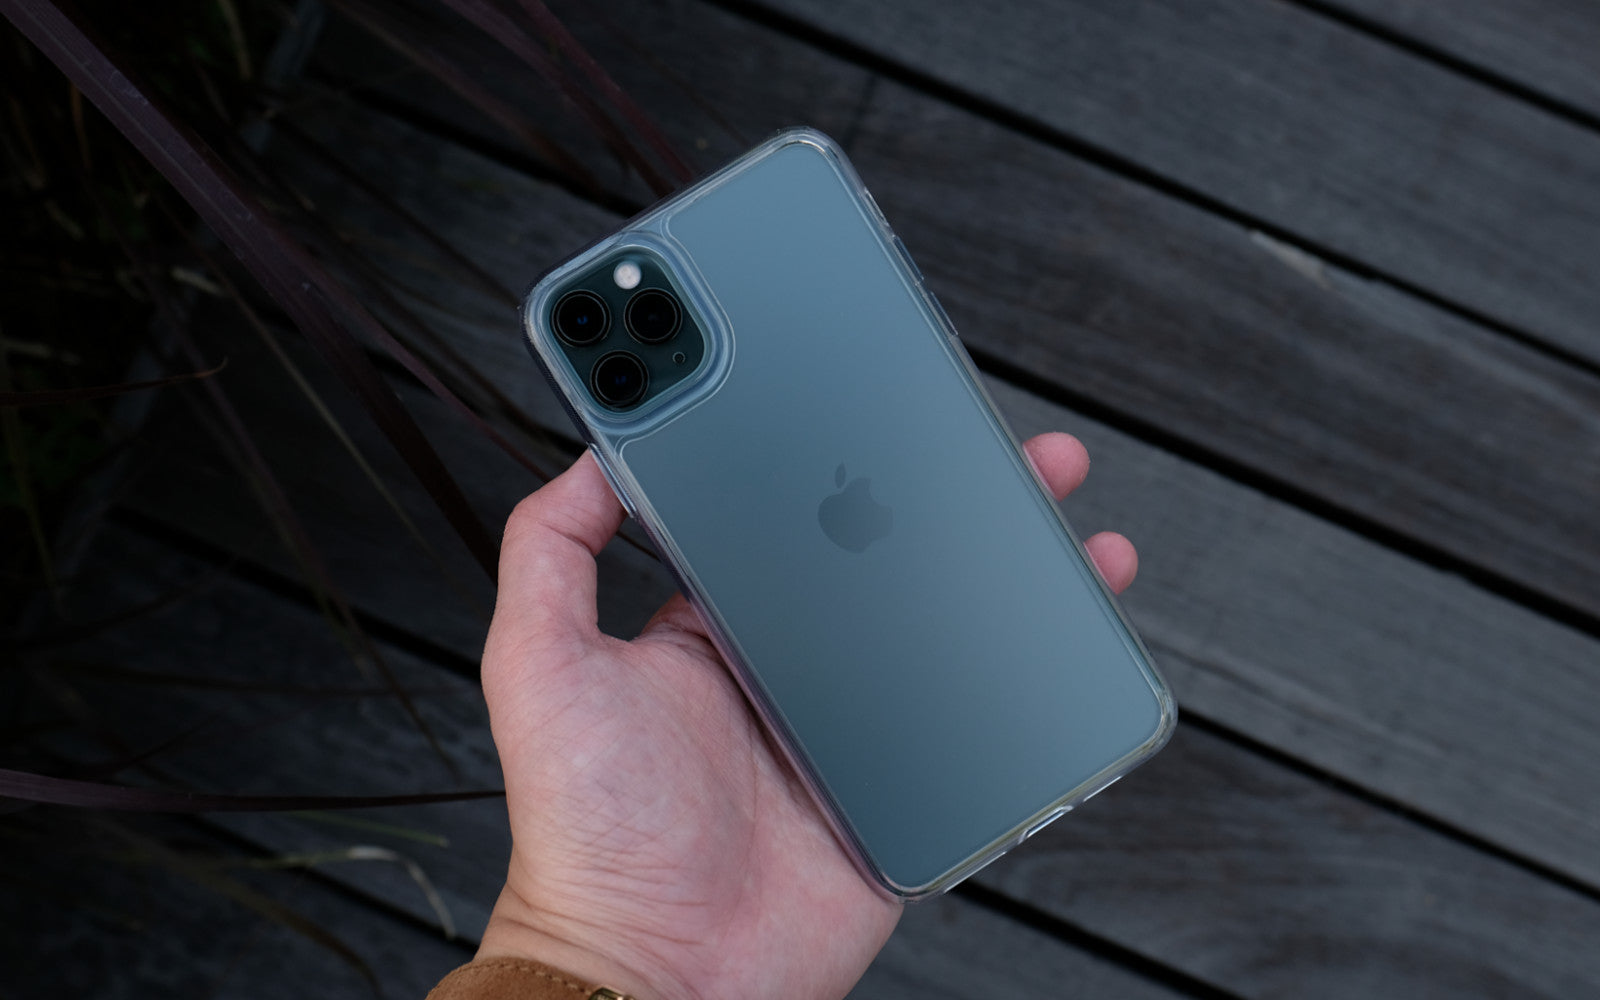 Bare Back Minimlist Shock Resistant Case with a Frosted Glass Back for iPhone 11 Pro and 11 Pro Max - Branding-Free